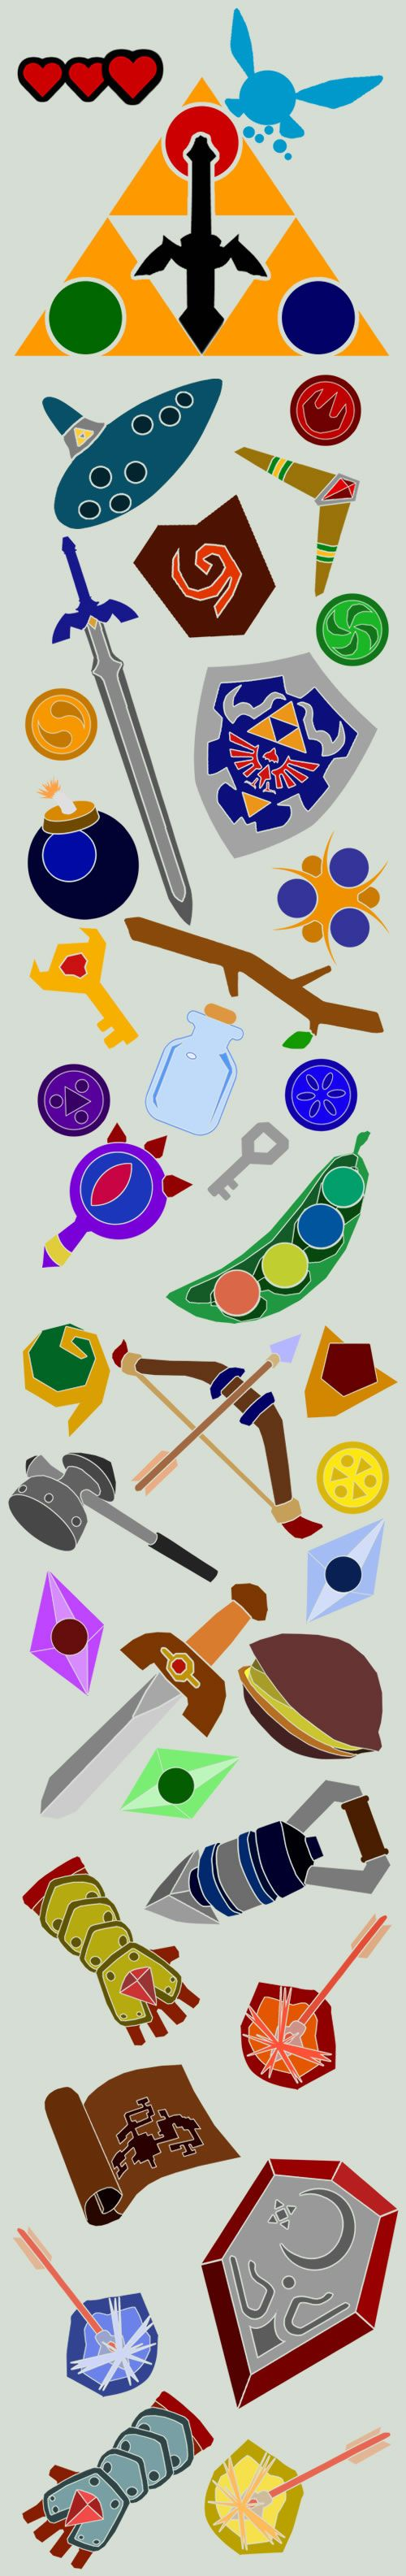 Loz oot items by sirnosh neardyness pinterest deviantart